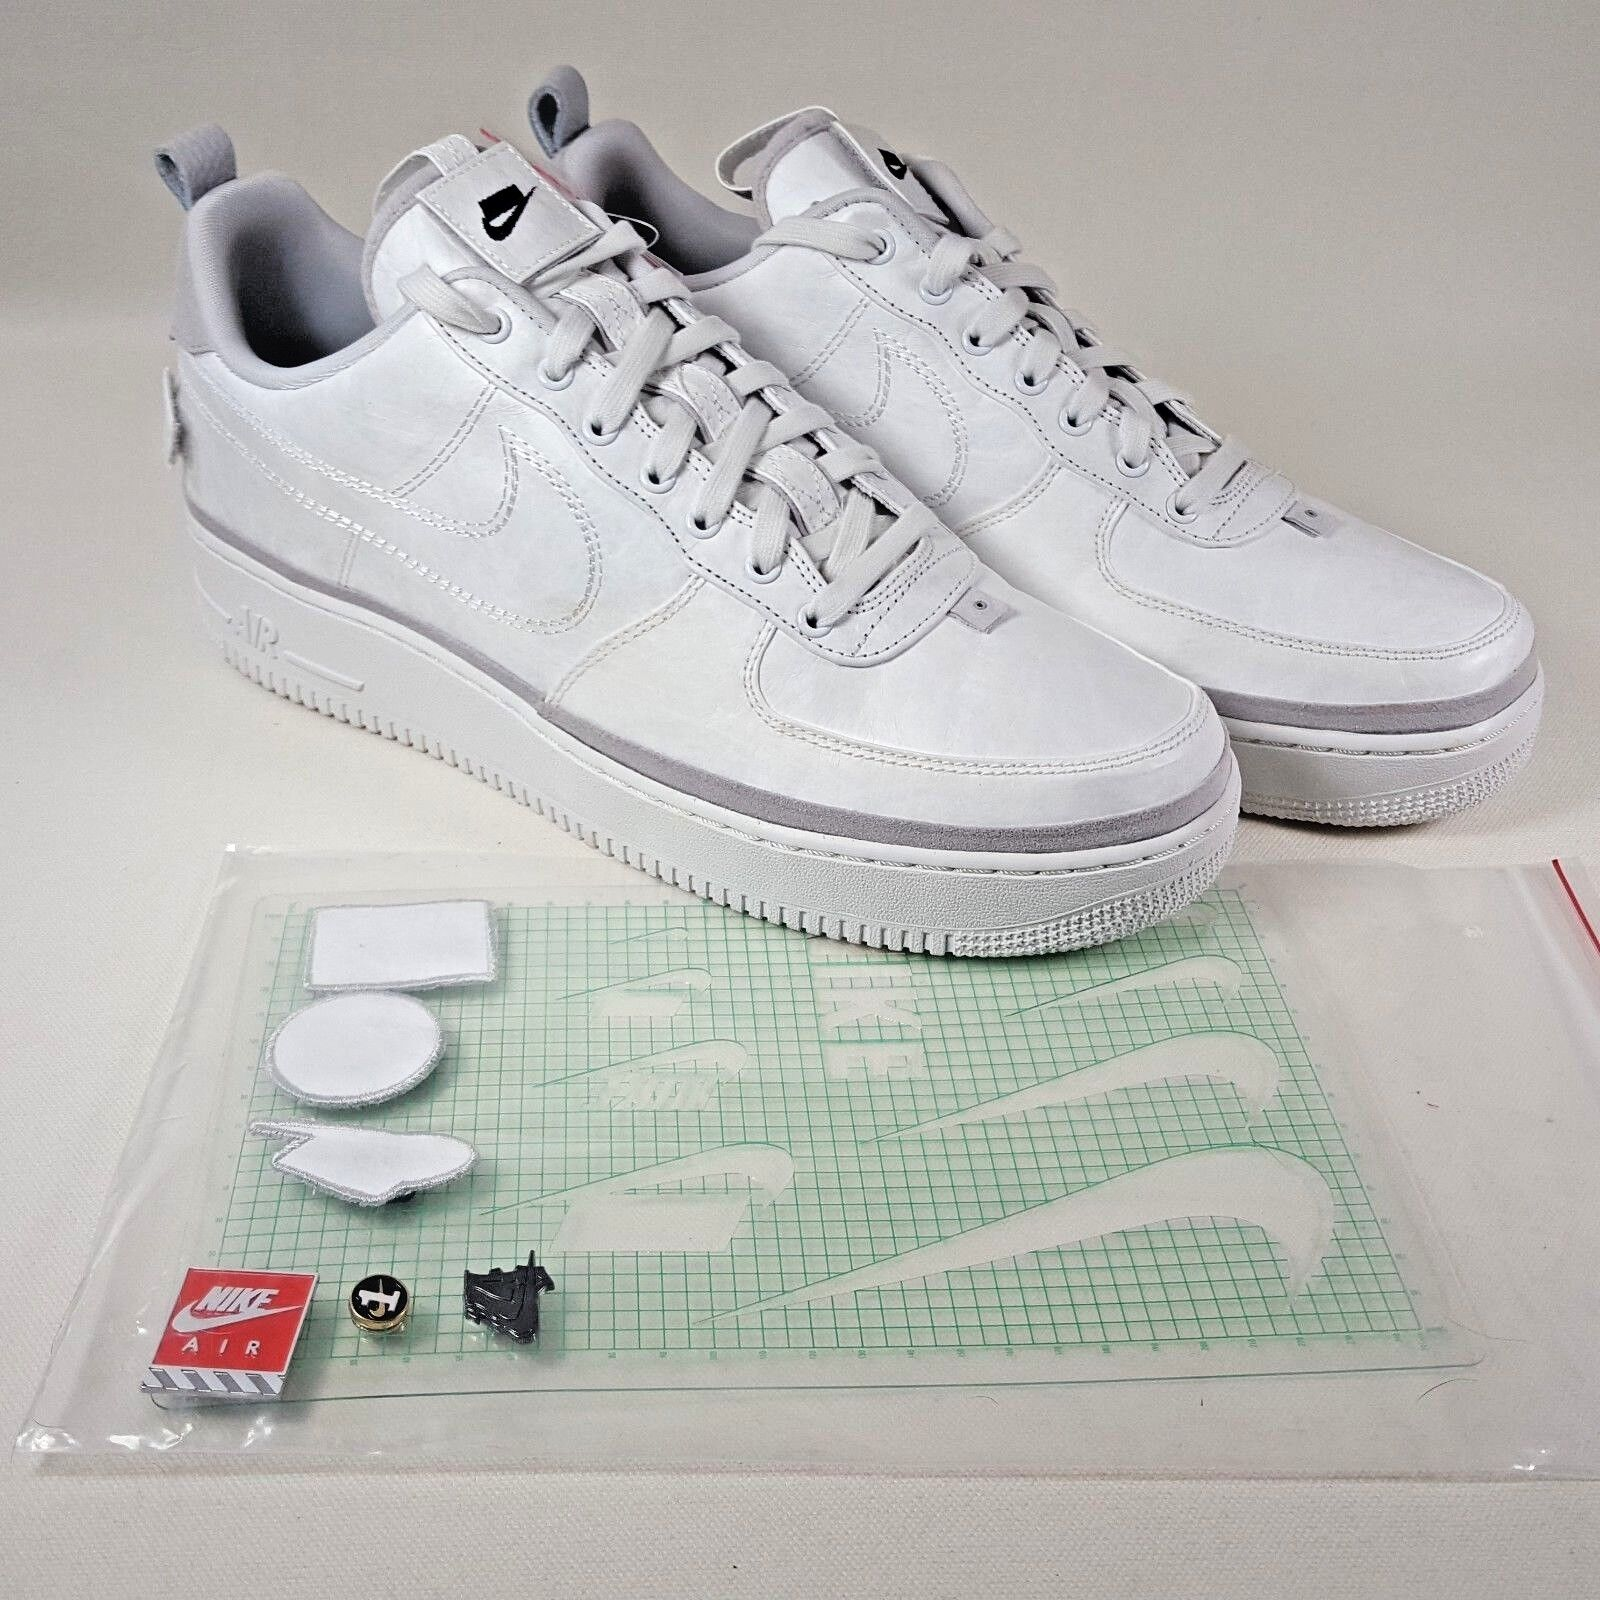 1b8967f415d Nike Air Force 1 Low '07 AS QS All Star 90 10 2018 White Men's Size 13 Vast  Grey nxkqpo1364-Athletic Shoes